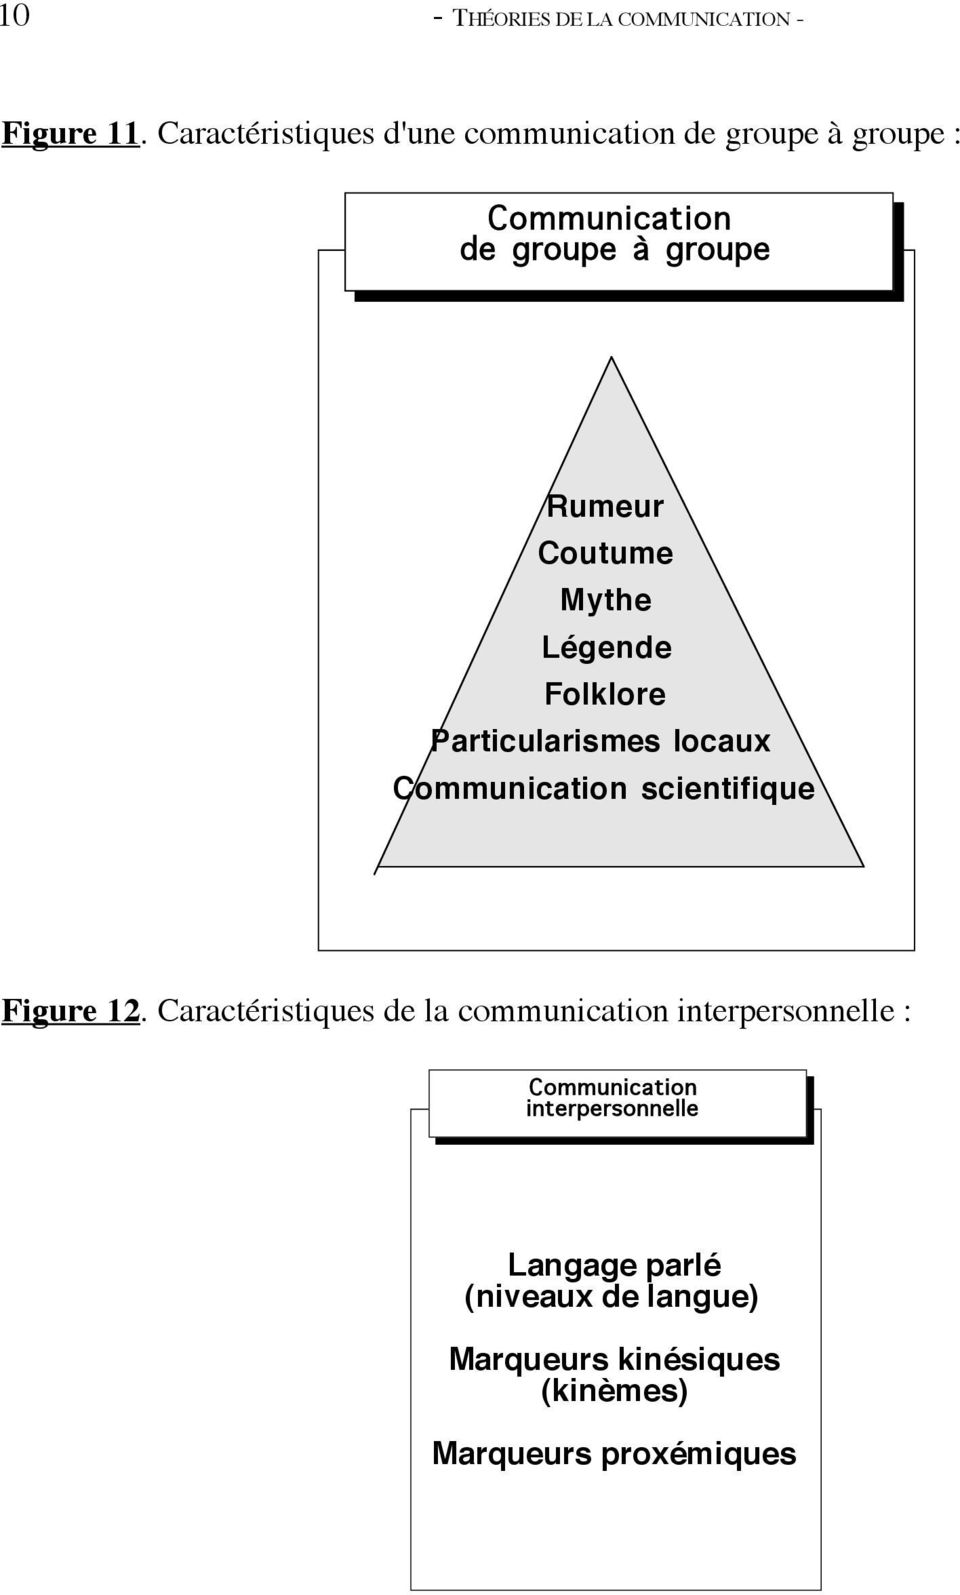 Coutume Mythe Légende Folklore Particularismes locaux Communication scientifique Figure 12.